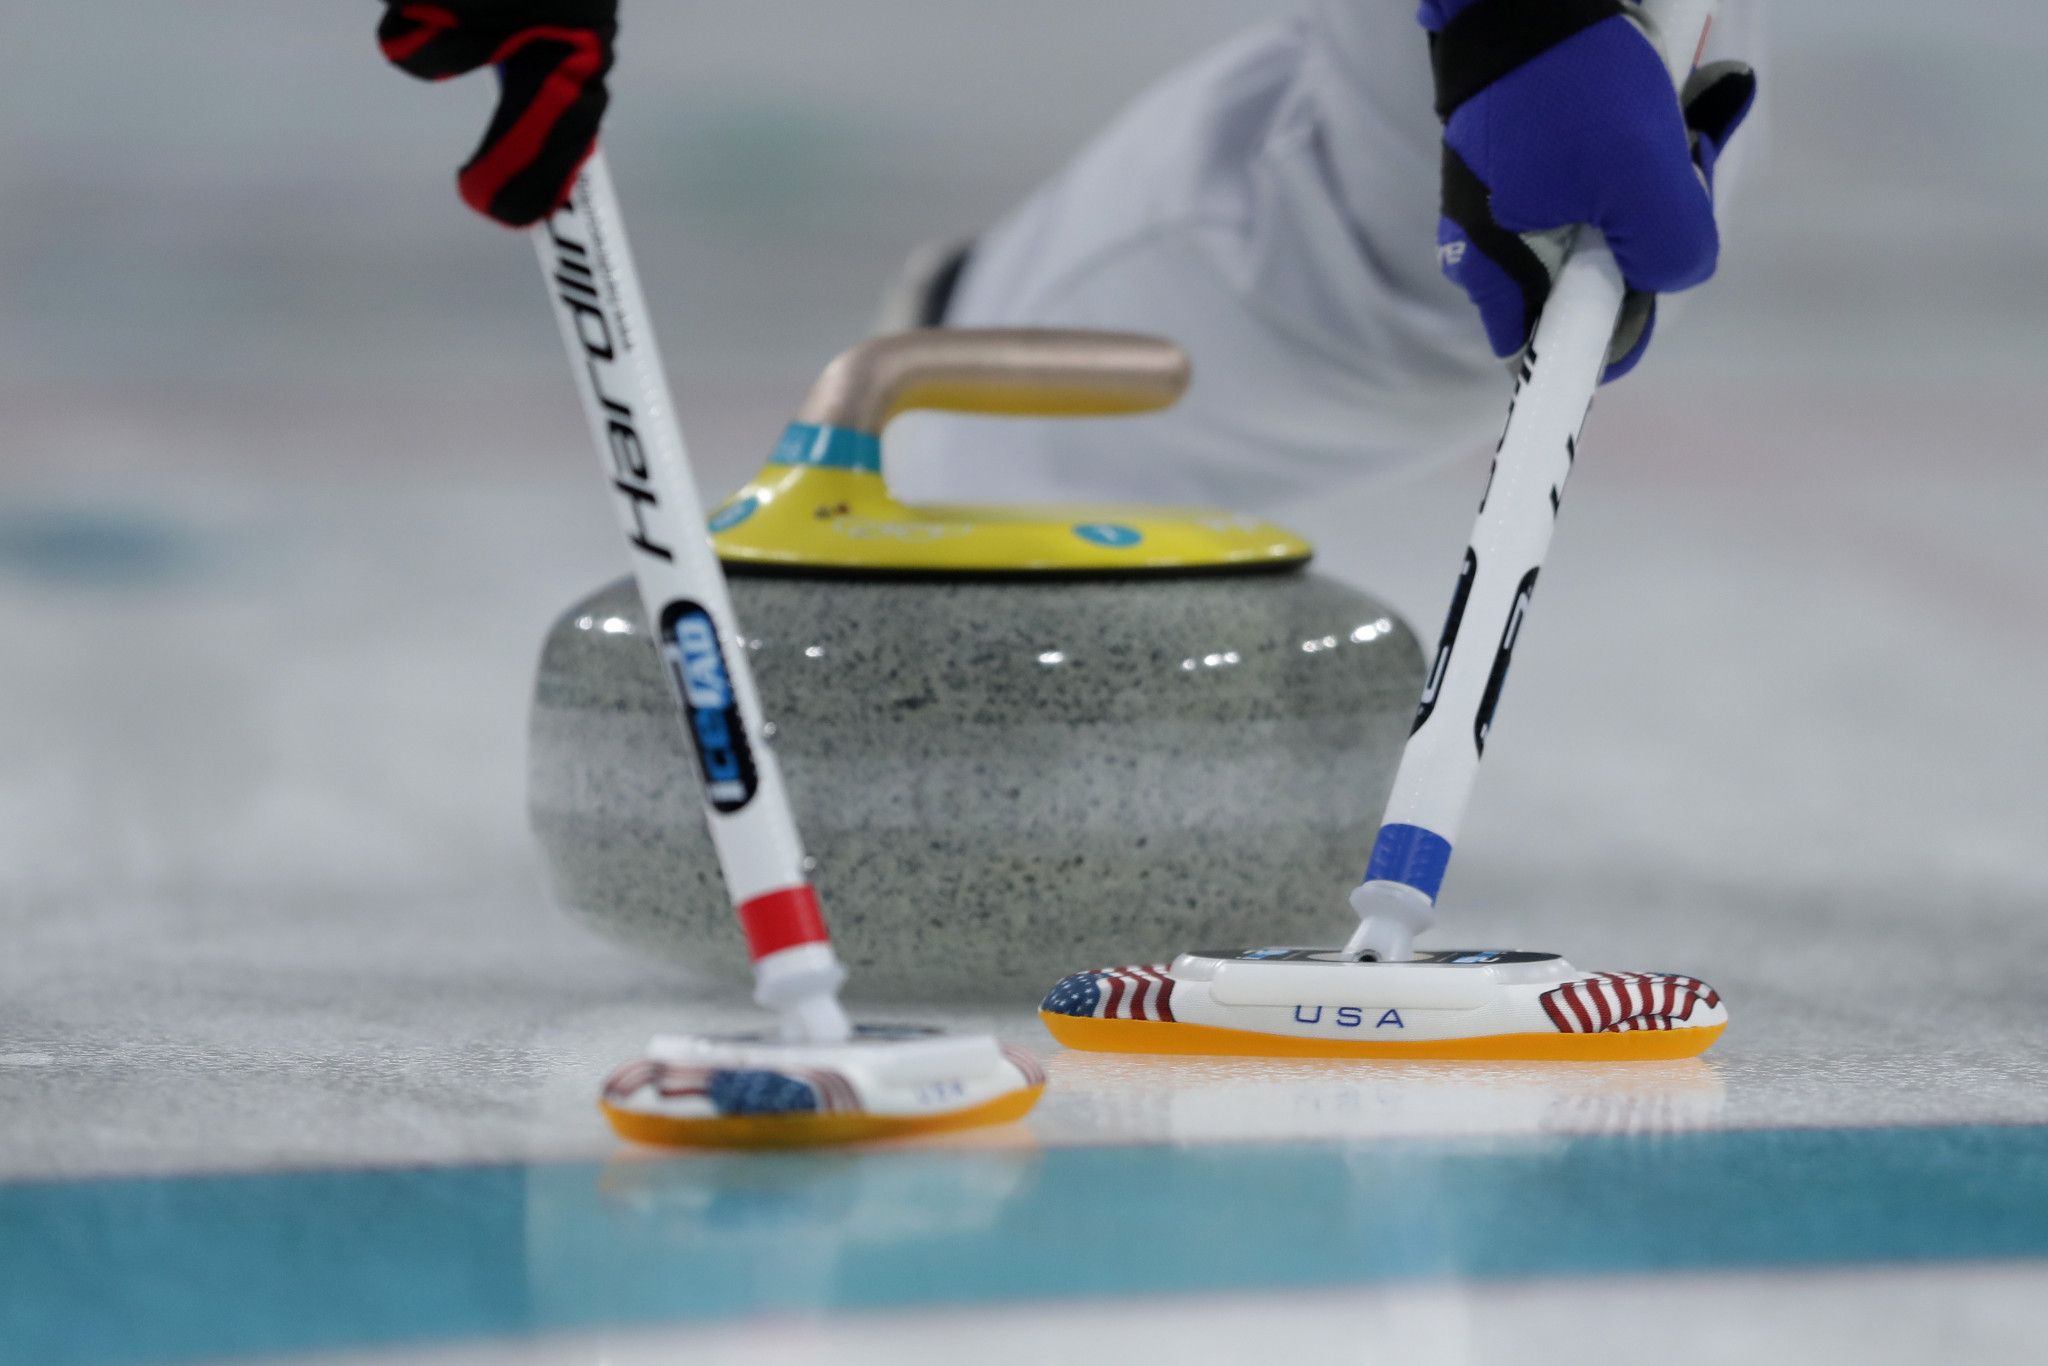 Christopher Hamilton will aim to raise the profile of curling in the lead-up to the Beijing 2022 Winter Olympics ©Getty Images